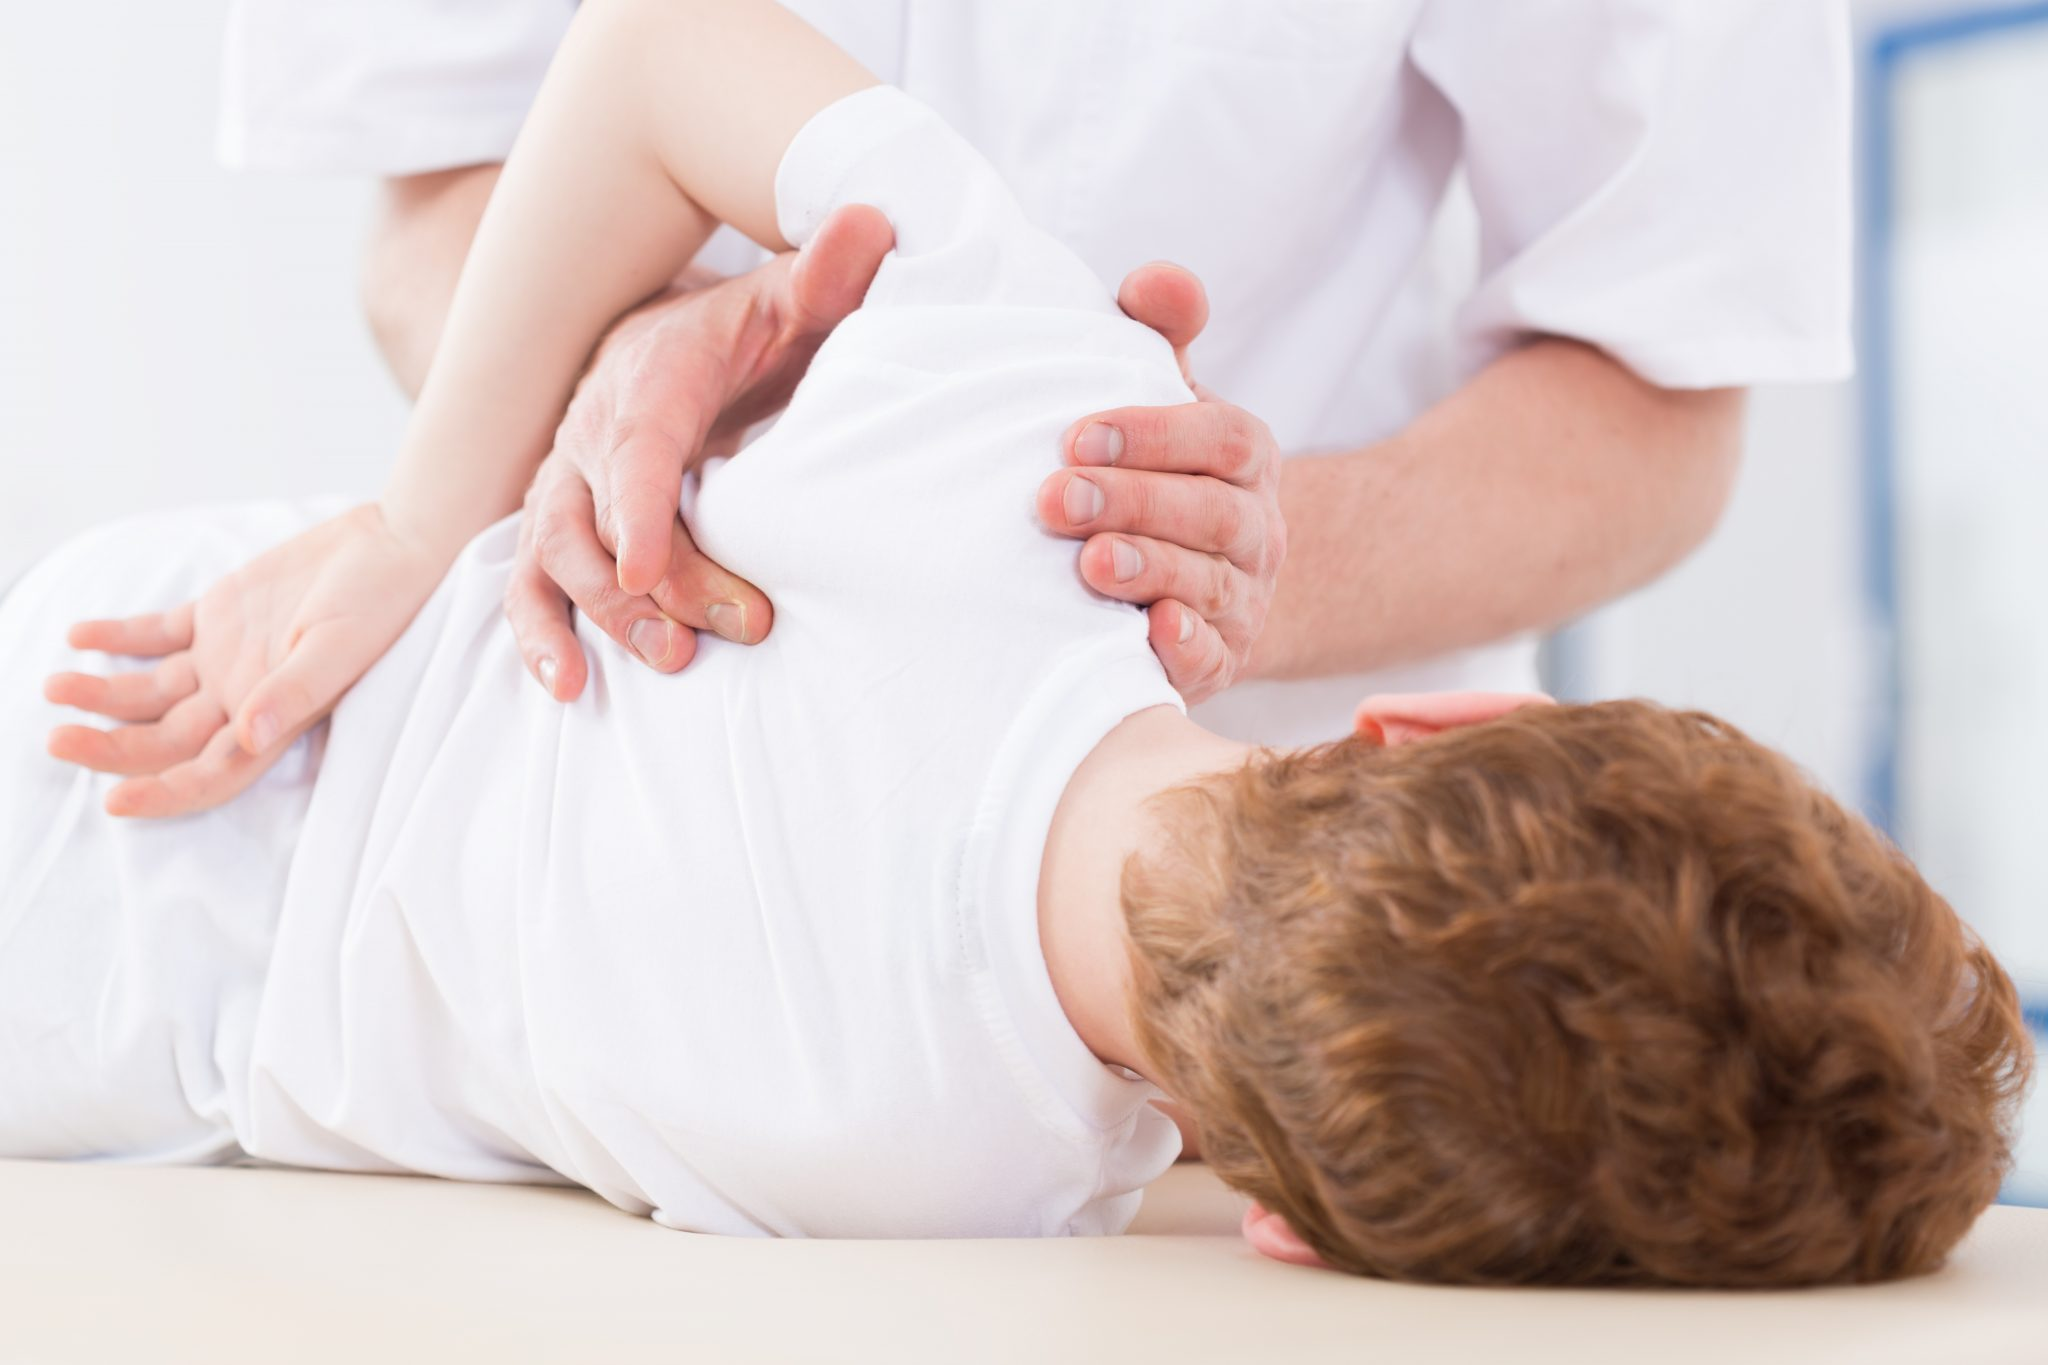 especialista en terapia manual osteopatia